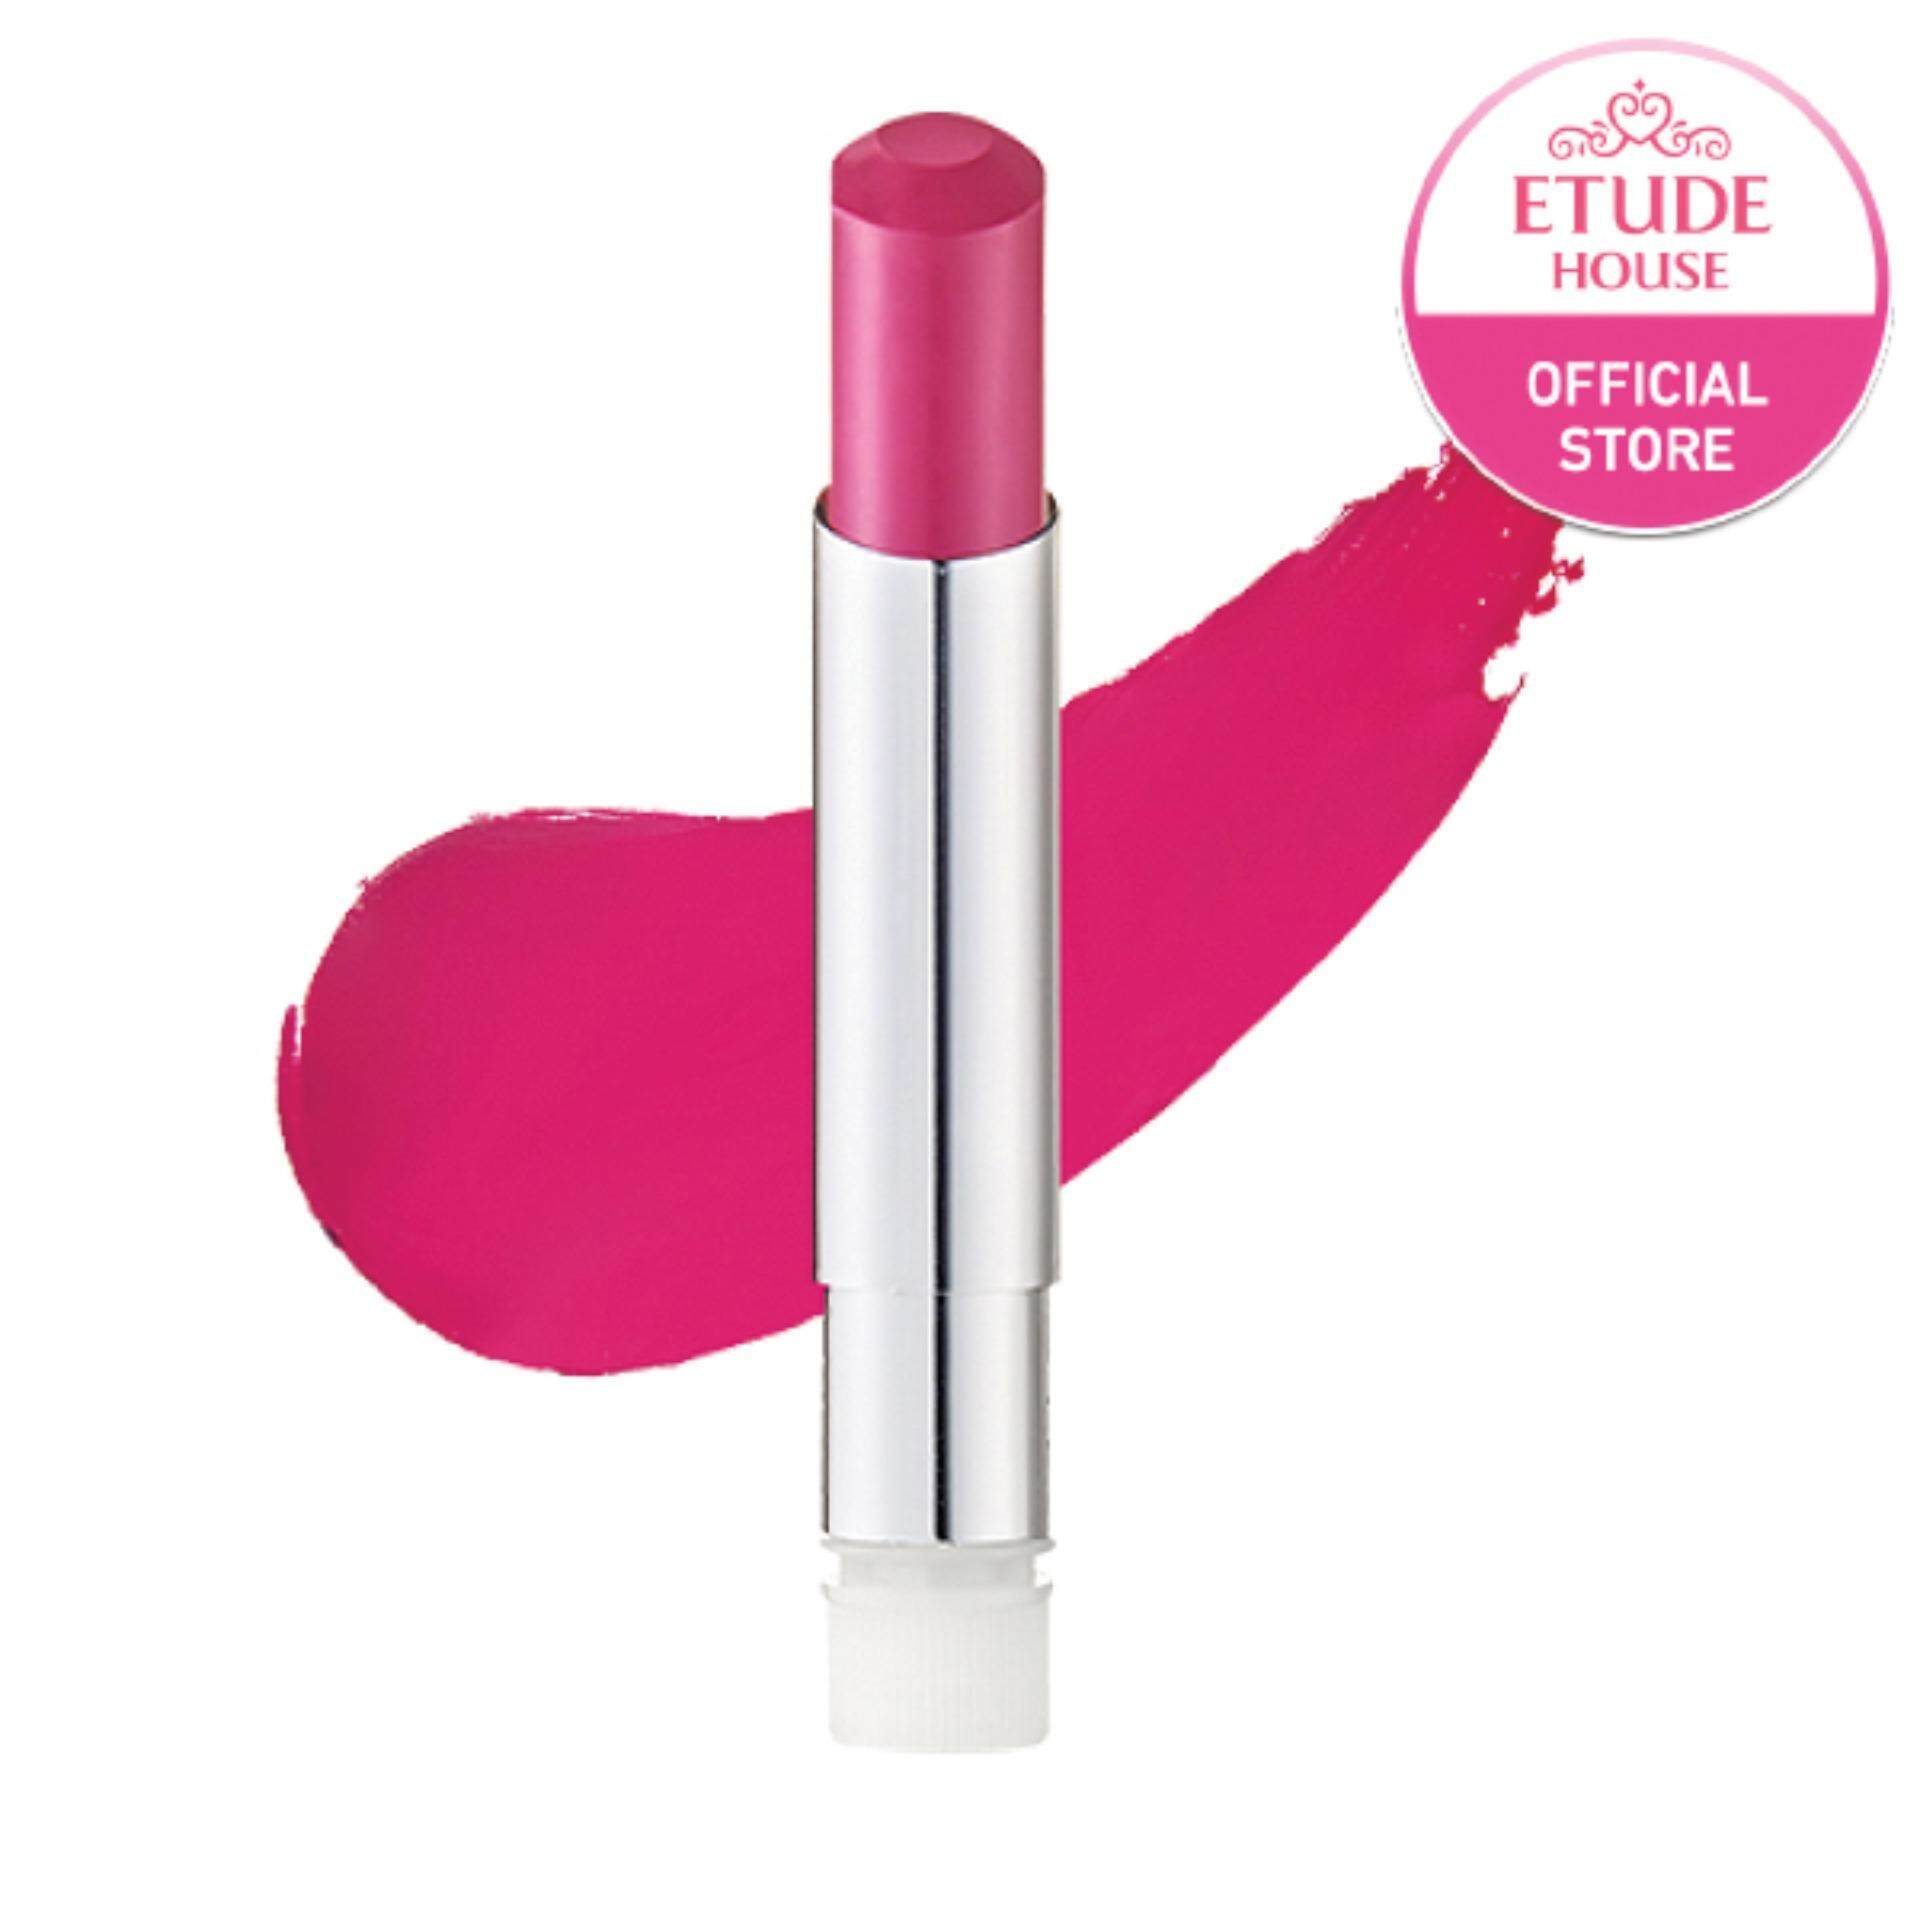 ETUDE HOUSE Dear My Matte Tinting Lips-Talk #BR401 (3 g) เฉพาะไส้ลิปสติก